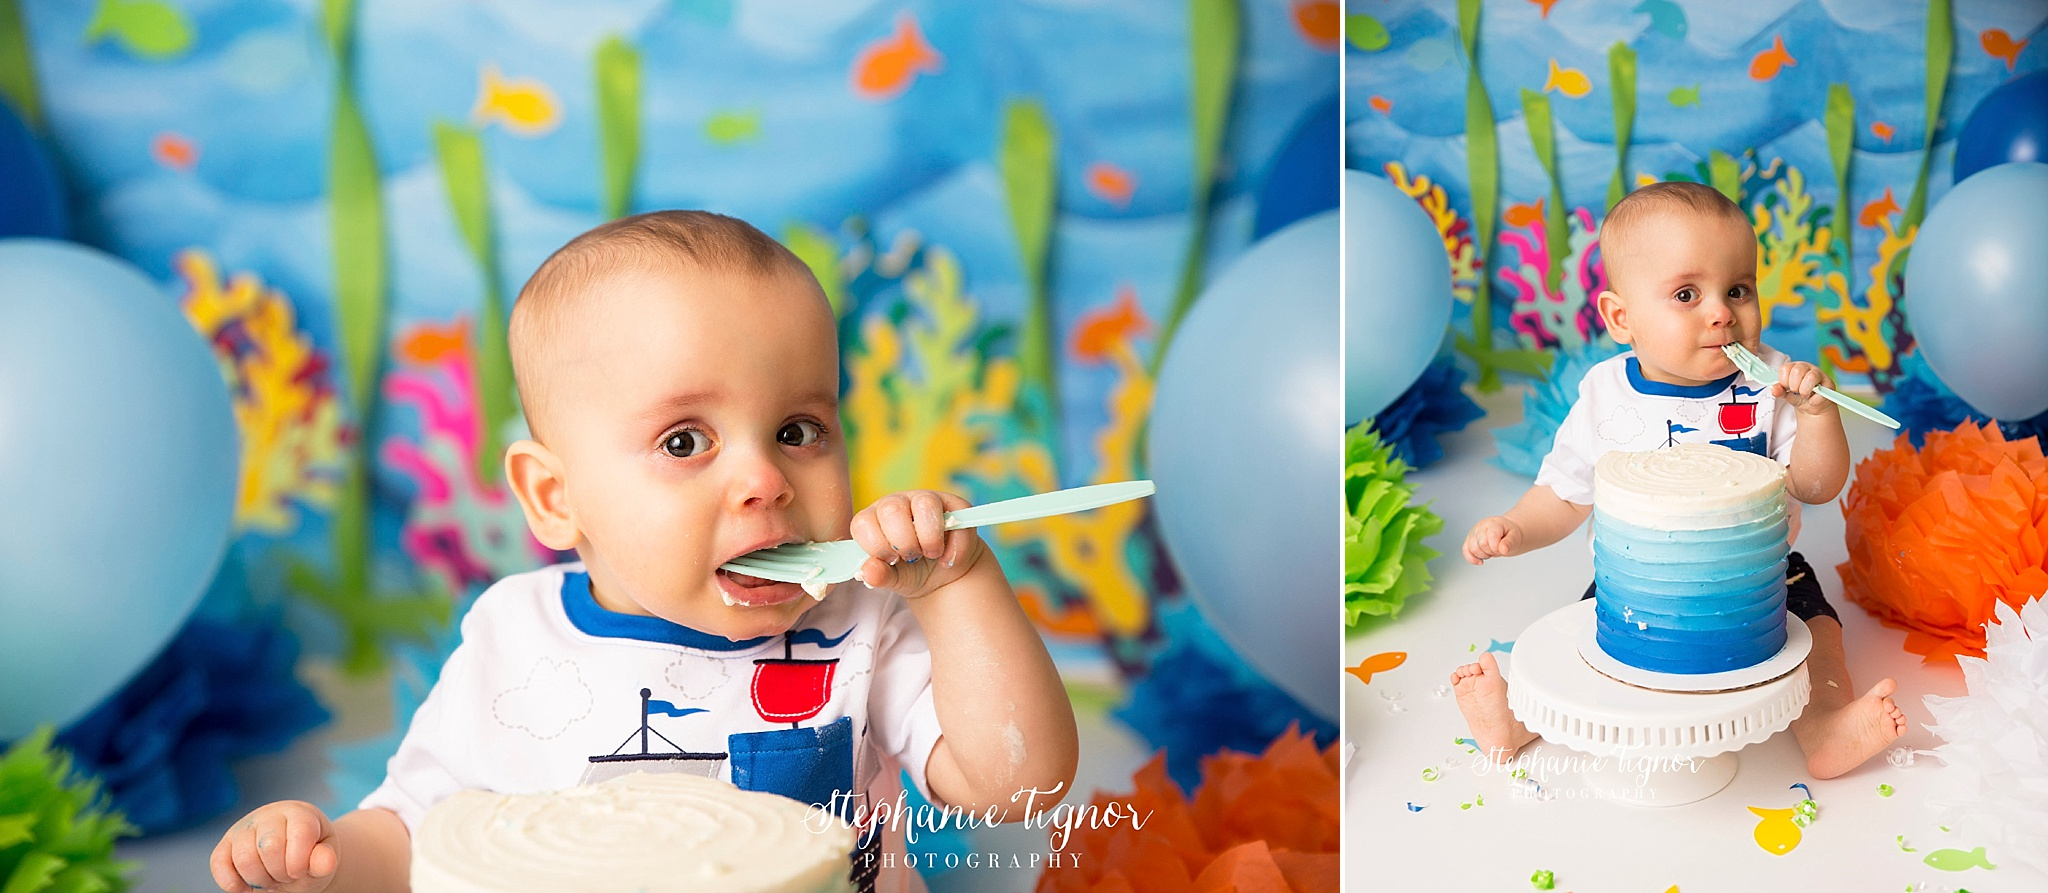 Stephanie Tignor Photography | Fredericksburg VA Cake Smash Photographer | Warrenton VA Cake Smash Photographer | Stafford VA Cake Smash Photographer | Cake Smash Photographer